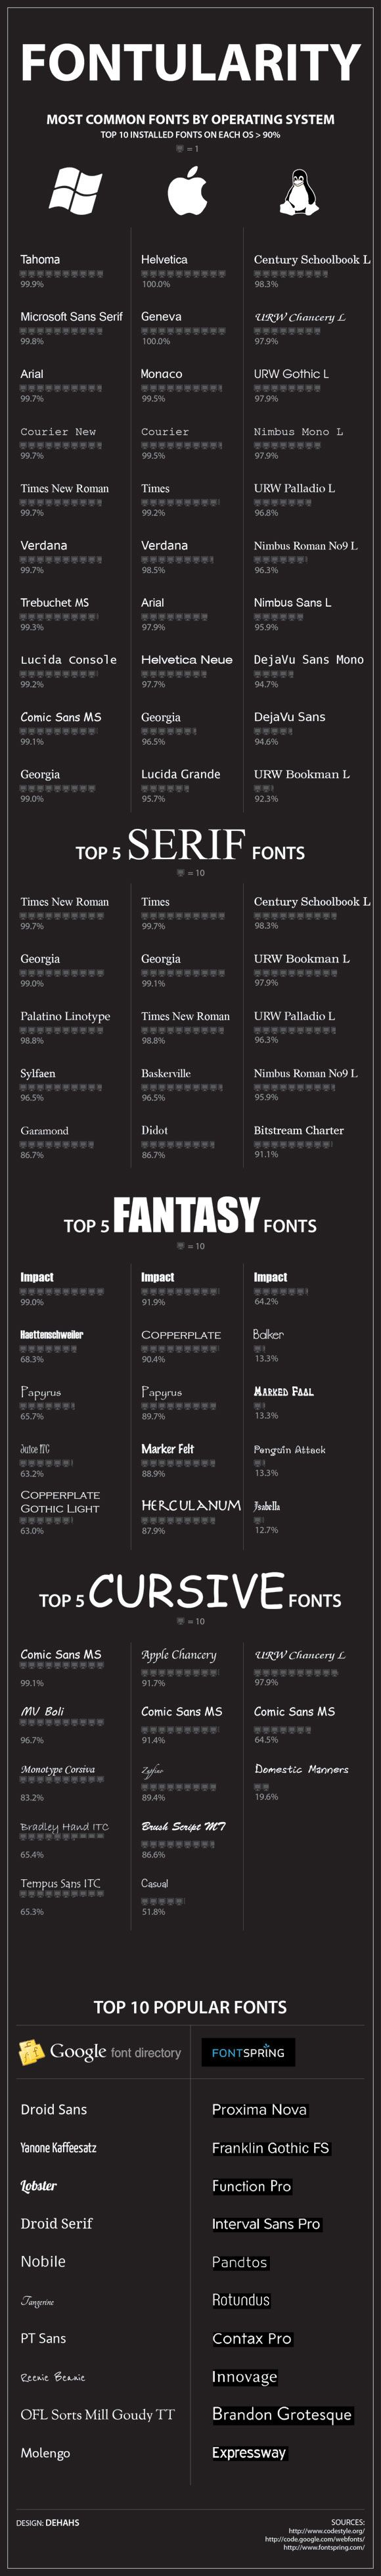 Fontularity: Most Popular Fonts by Operating System: Fonts Typography, Most Popular, Graphics Design, Fonts Infographic, Common Fonts, Operation System, System Infographic, Popular Fonts, Typography Infographic